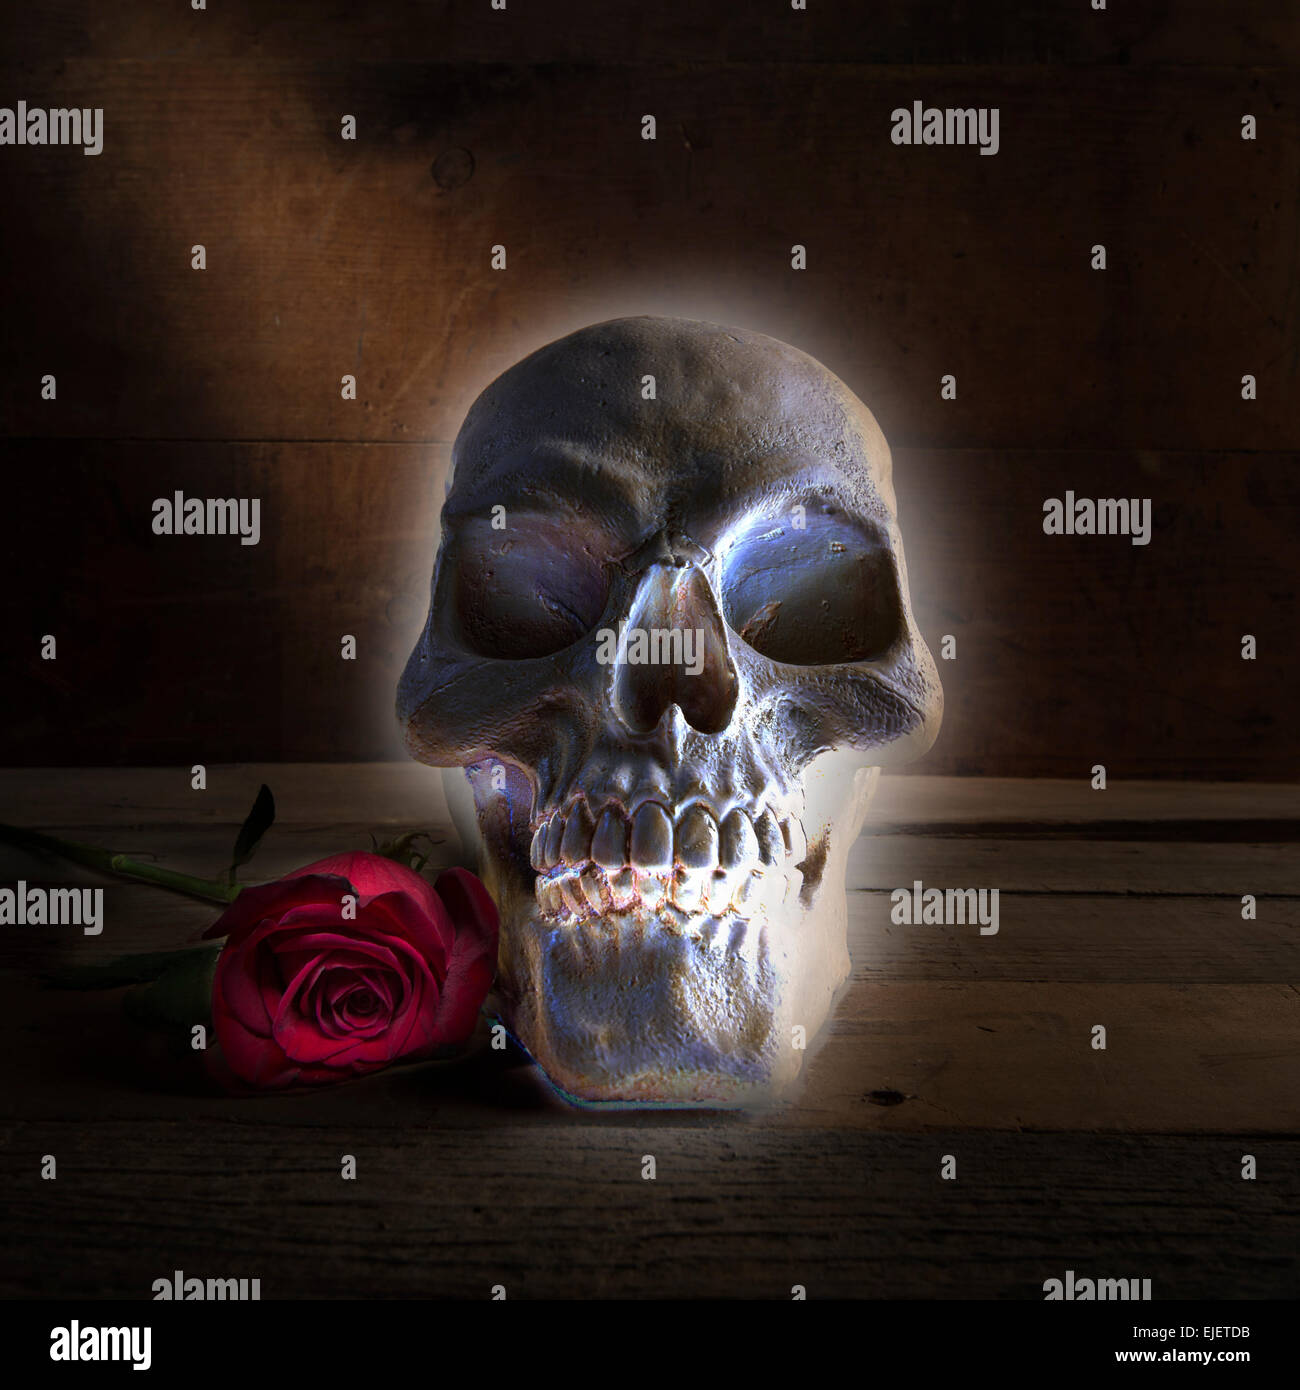 Halloween Glowing Skull With Rose - Stock Image